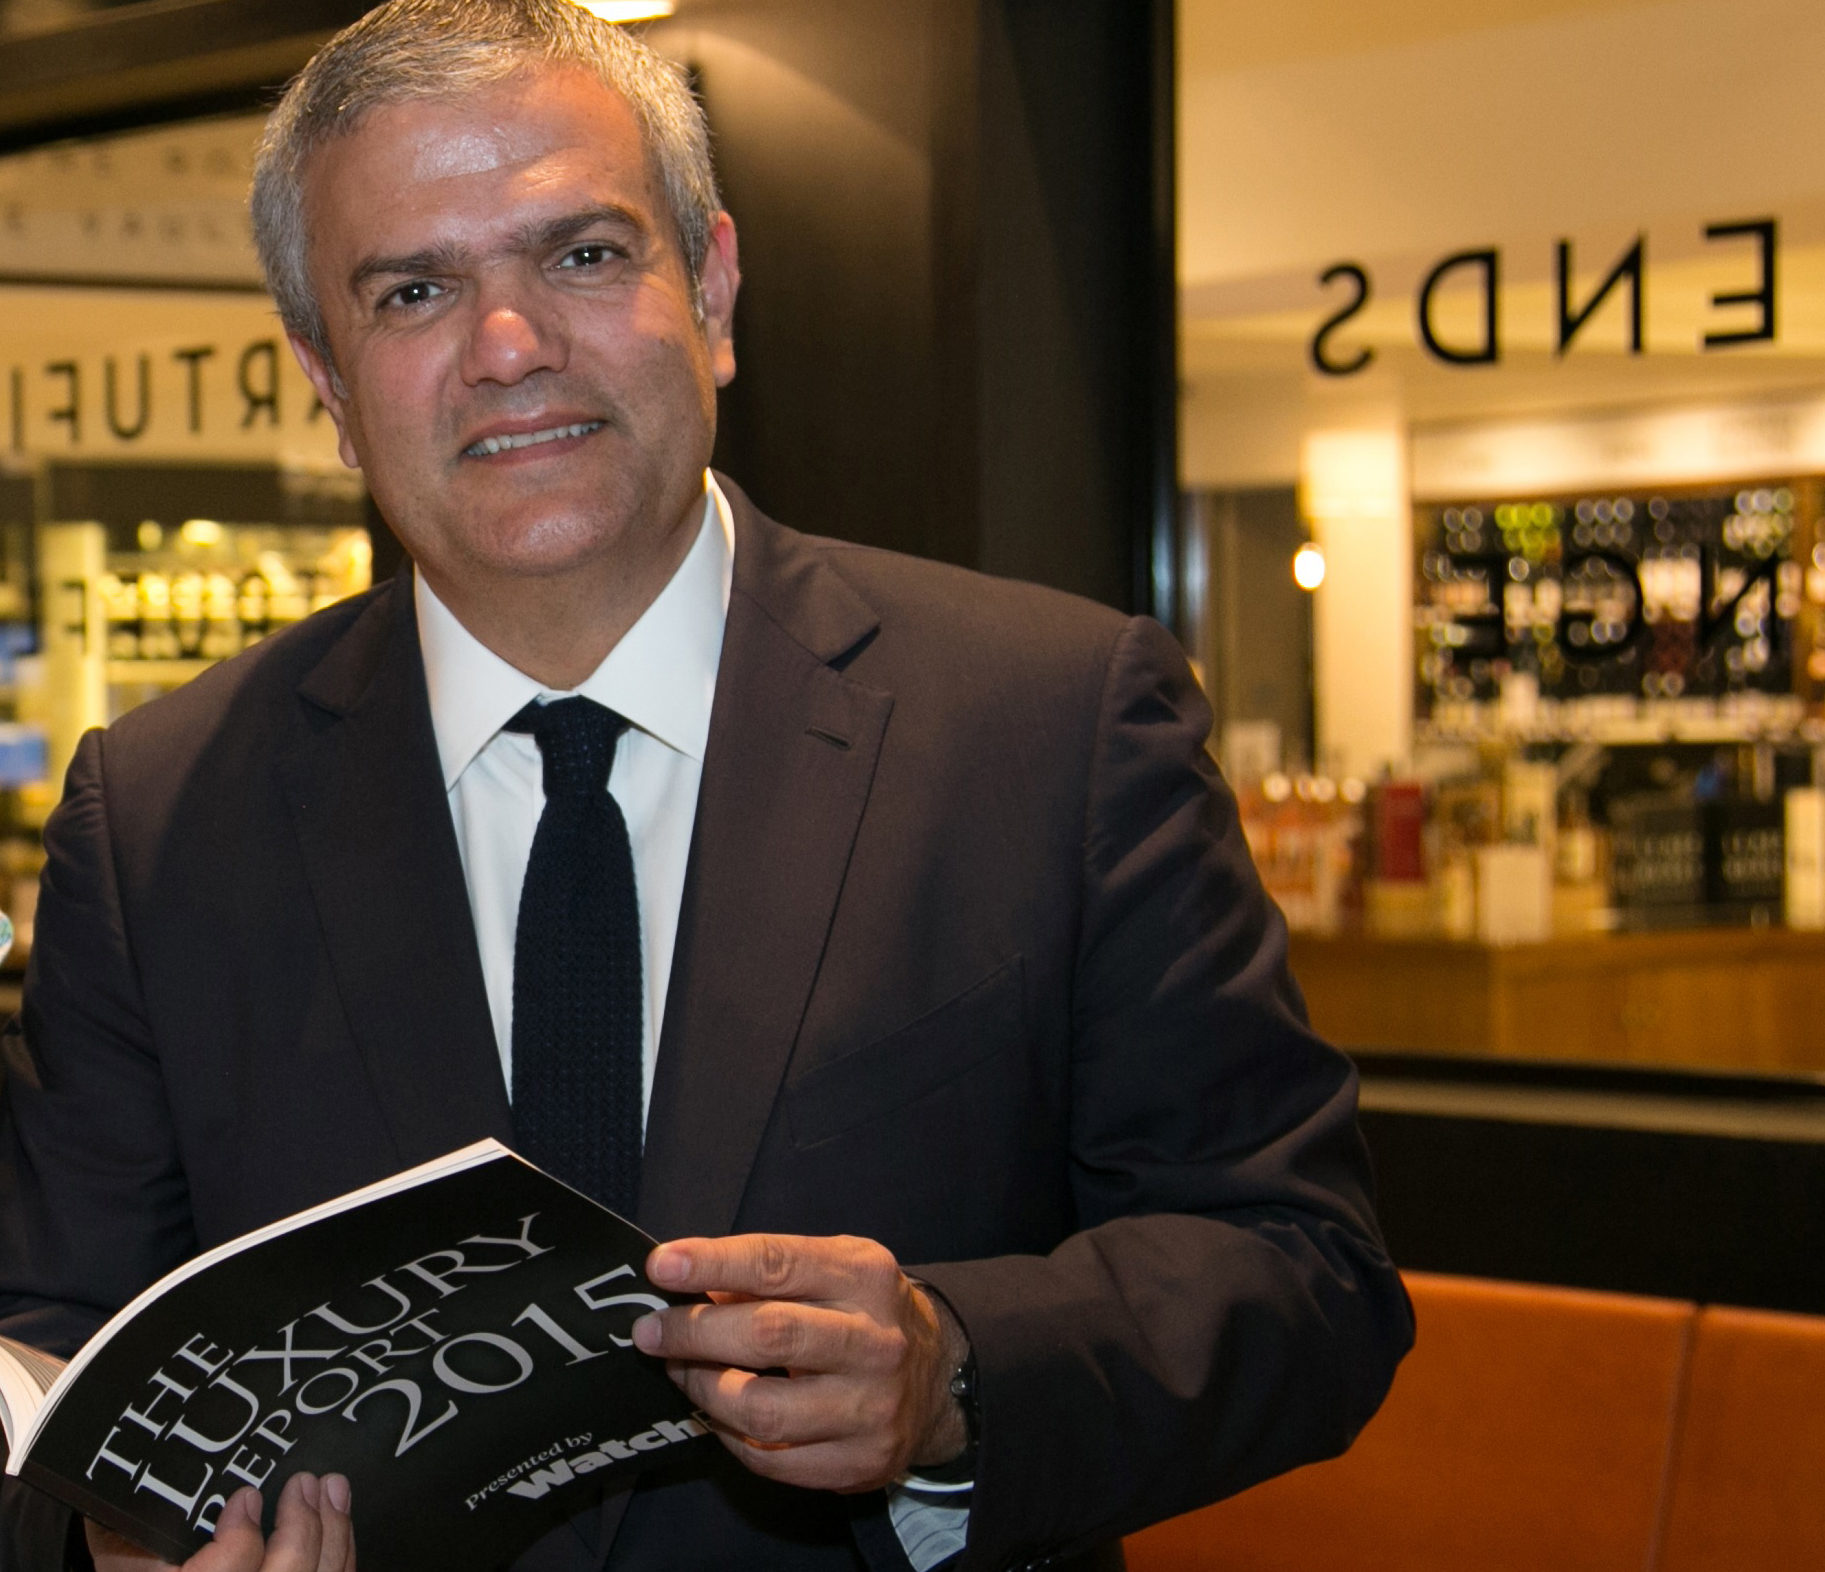 Ricardo Guadalupe, CEO of Hublot, catches up on important business news with his copy of the WatchPro Luxury Report.